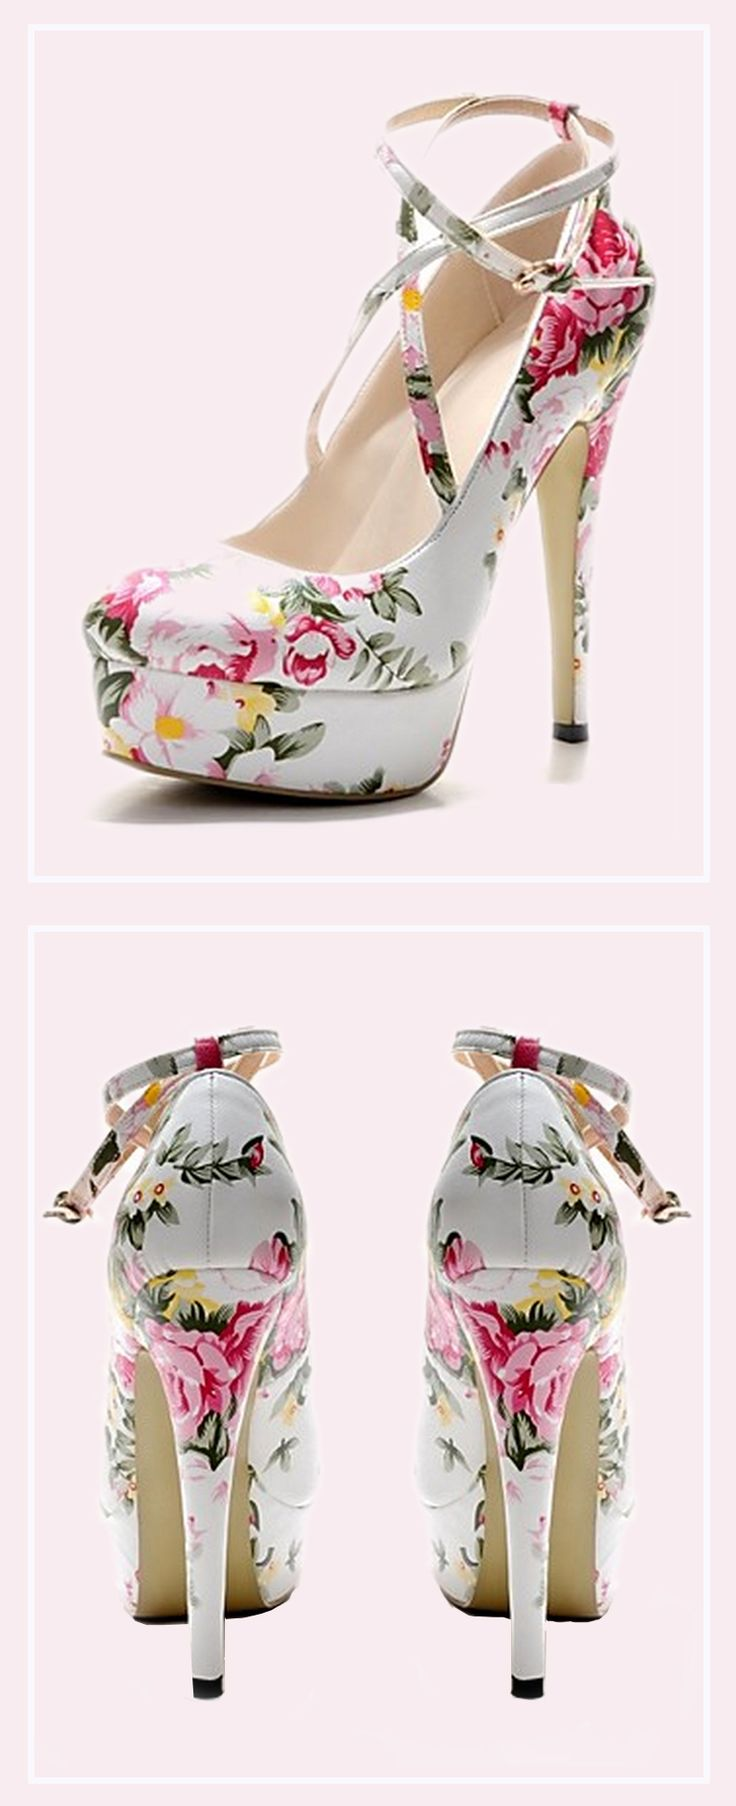 Floral heels are perfect for spring.